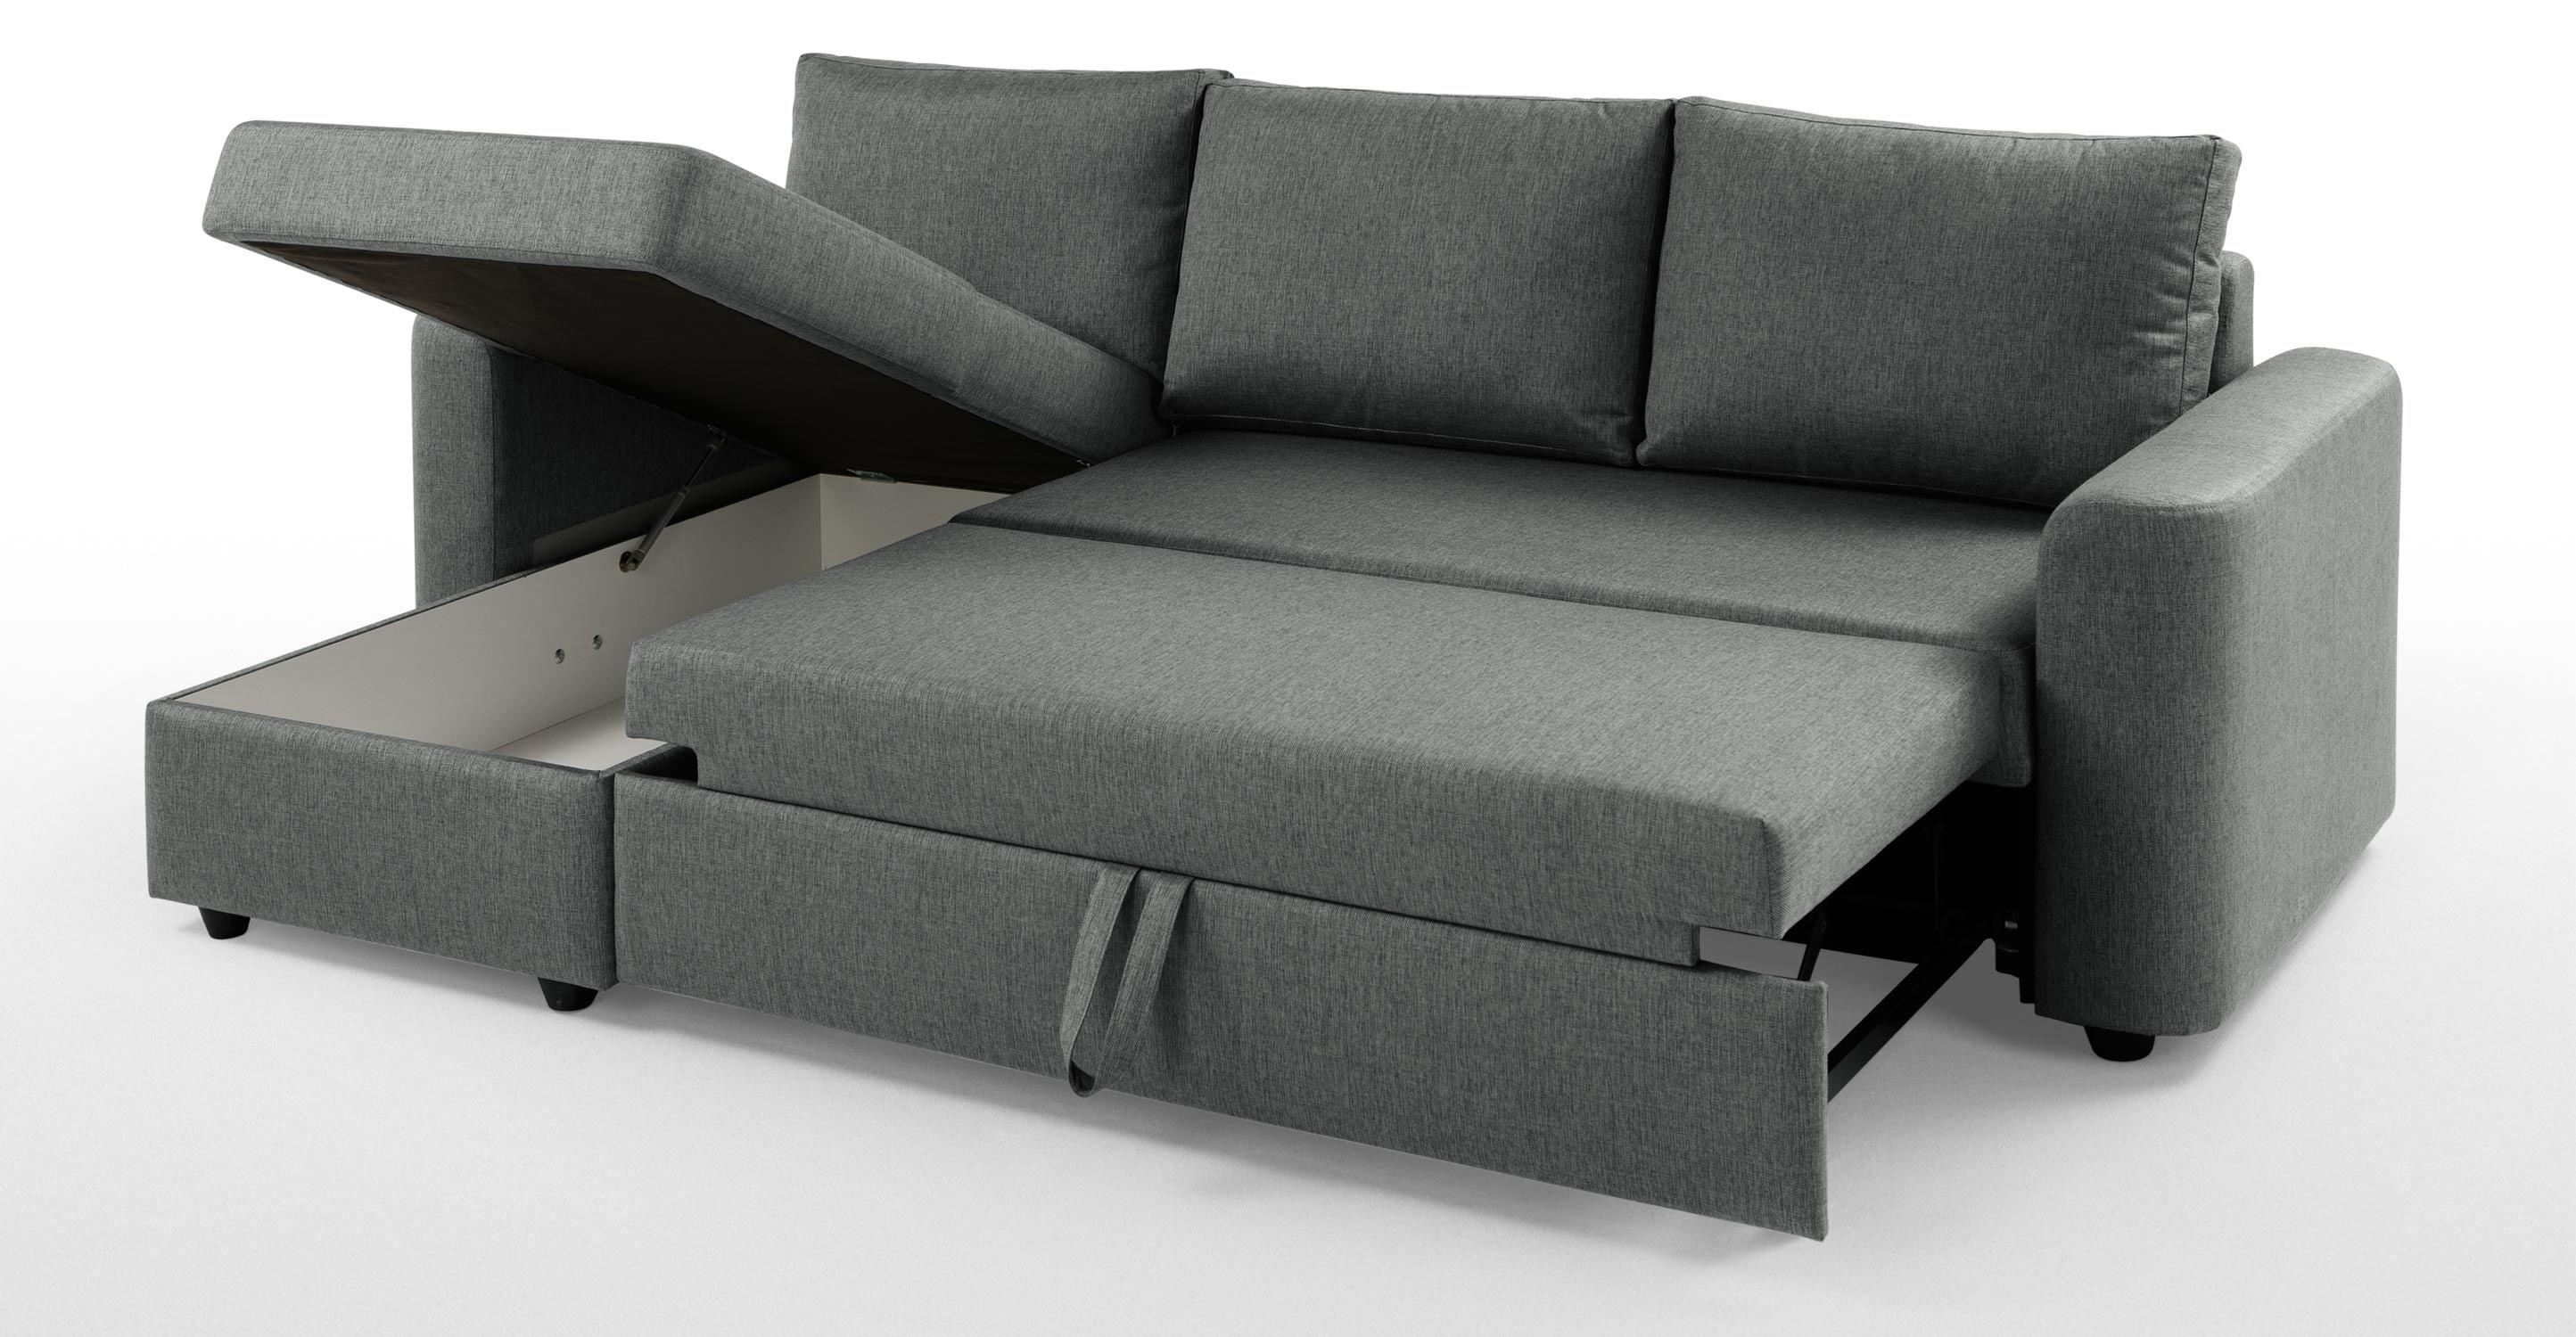 Chaise Sofa Bed With Storage. (View 13 of 20)